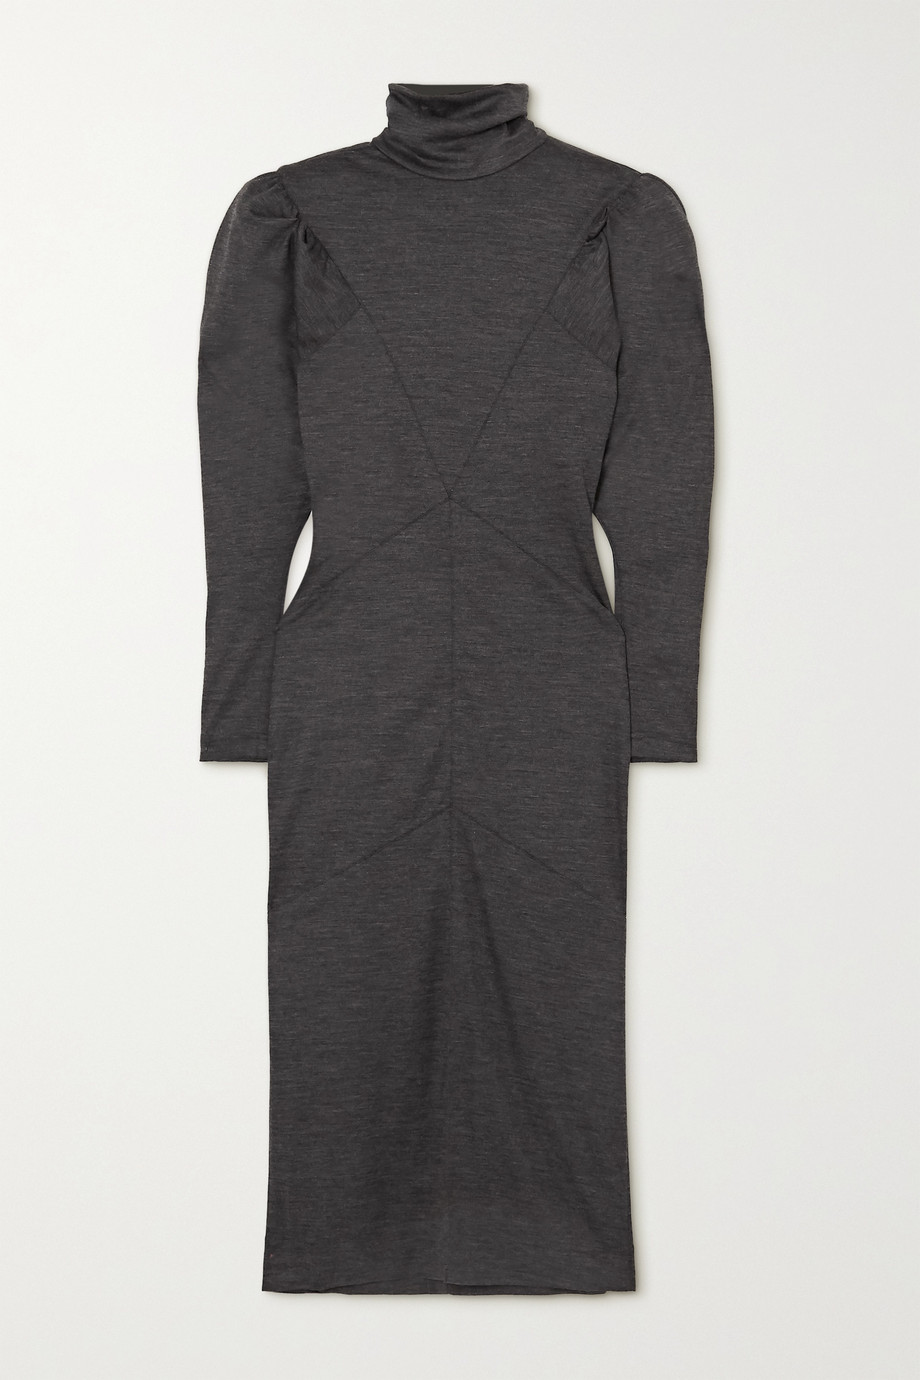 Isabel Marant Genia paneled mélange wool turtleneck midi dress